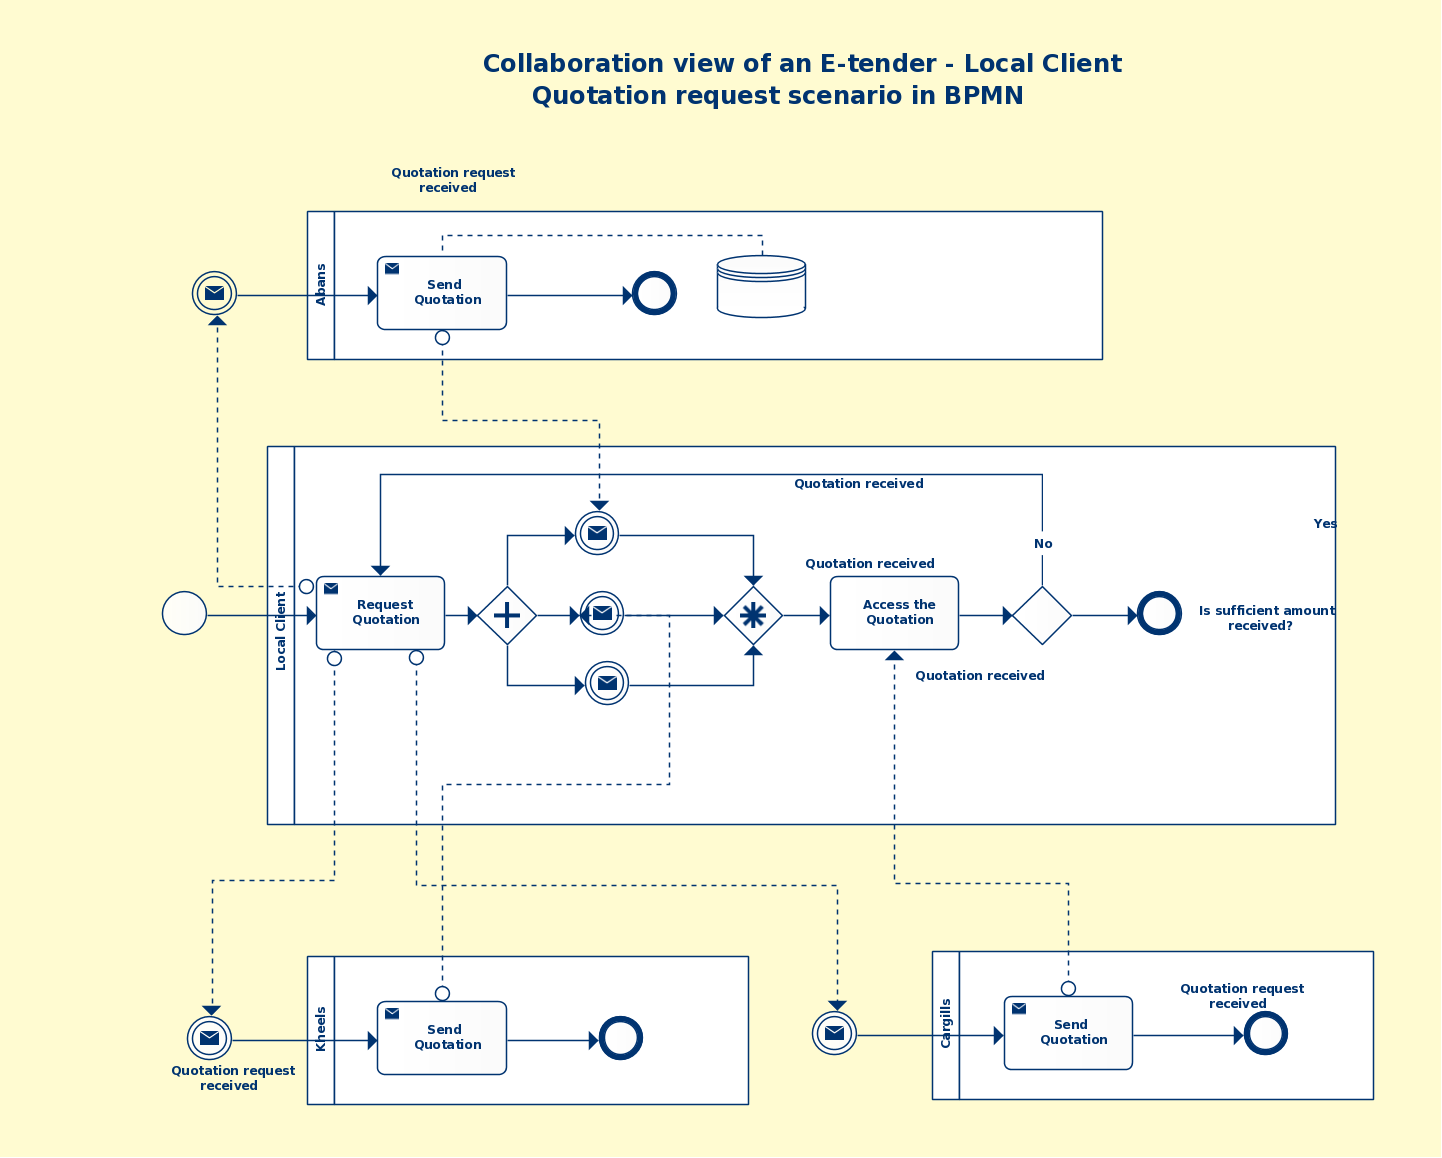 Visio bpmn septic systems cleaning diagram building diagram software bpmn templates examples to quickly model business processes e tender business process using bpmn bpmn templates model processes visio bpmn visio bpmn ccuart Gallery